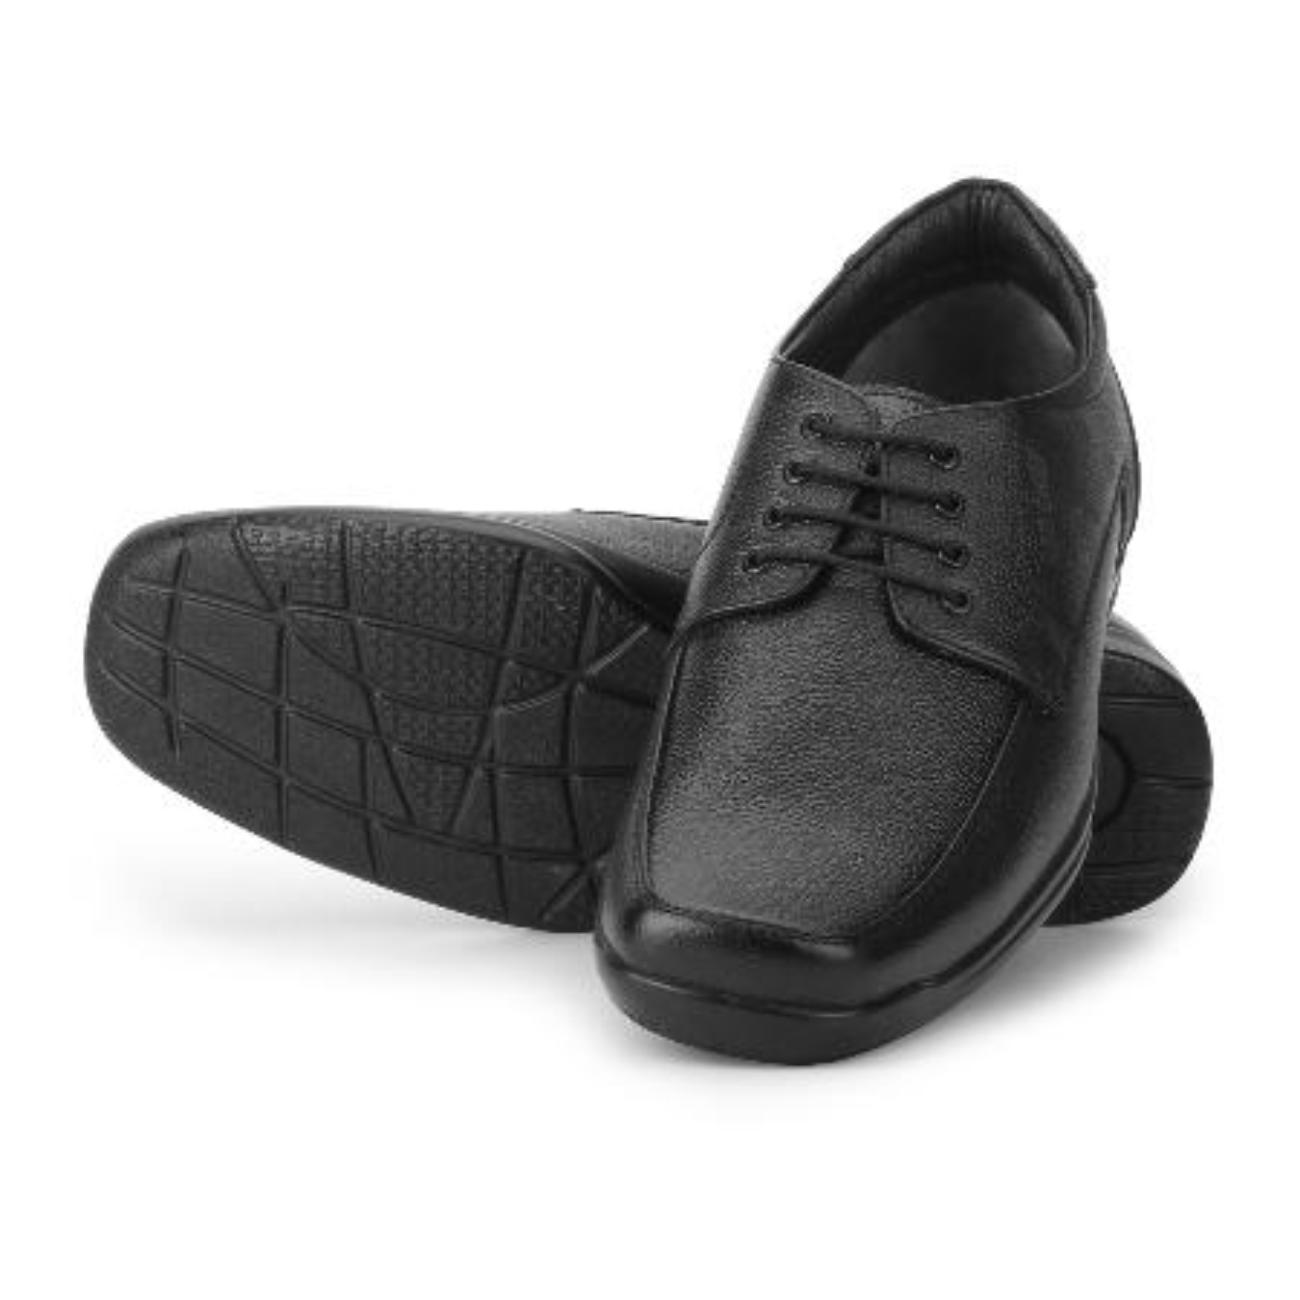 pure leather black formal shoes online